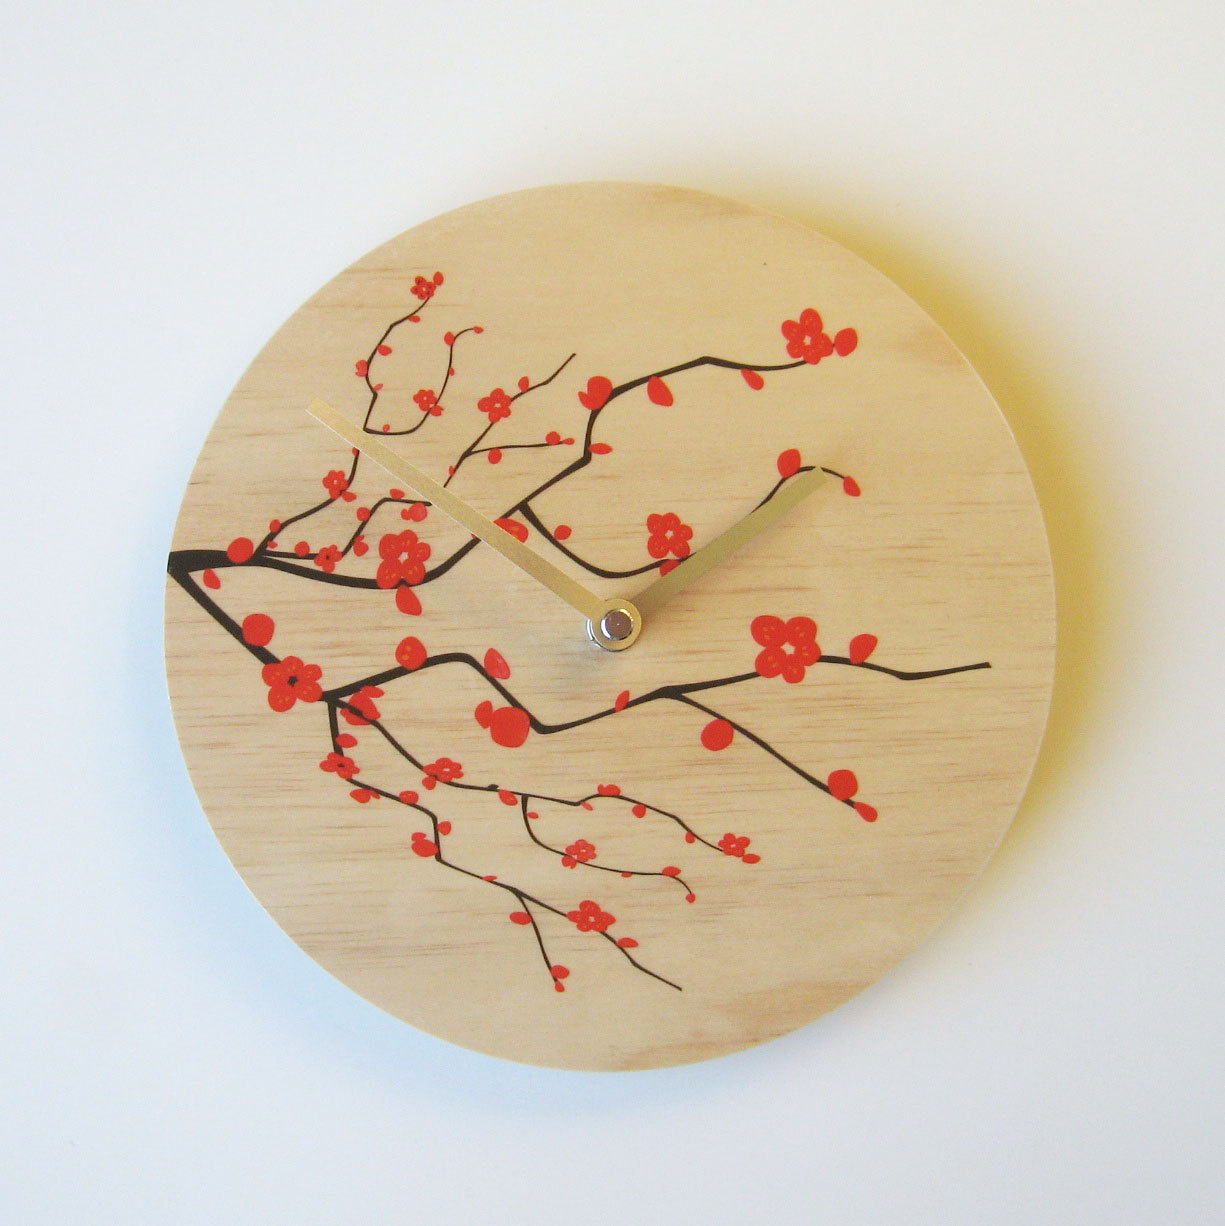 18 Creative and Handmade Wall Clock Designs Style Motivation : 18 Creative and Handmade Wall Clock Designs 18 from www.stylemotivation.com size 1225 x 1226 jpeg 188kB